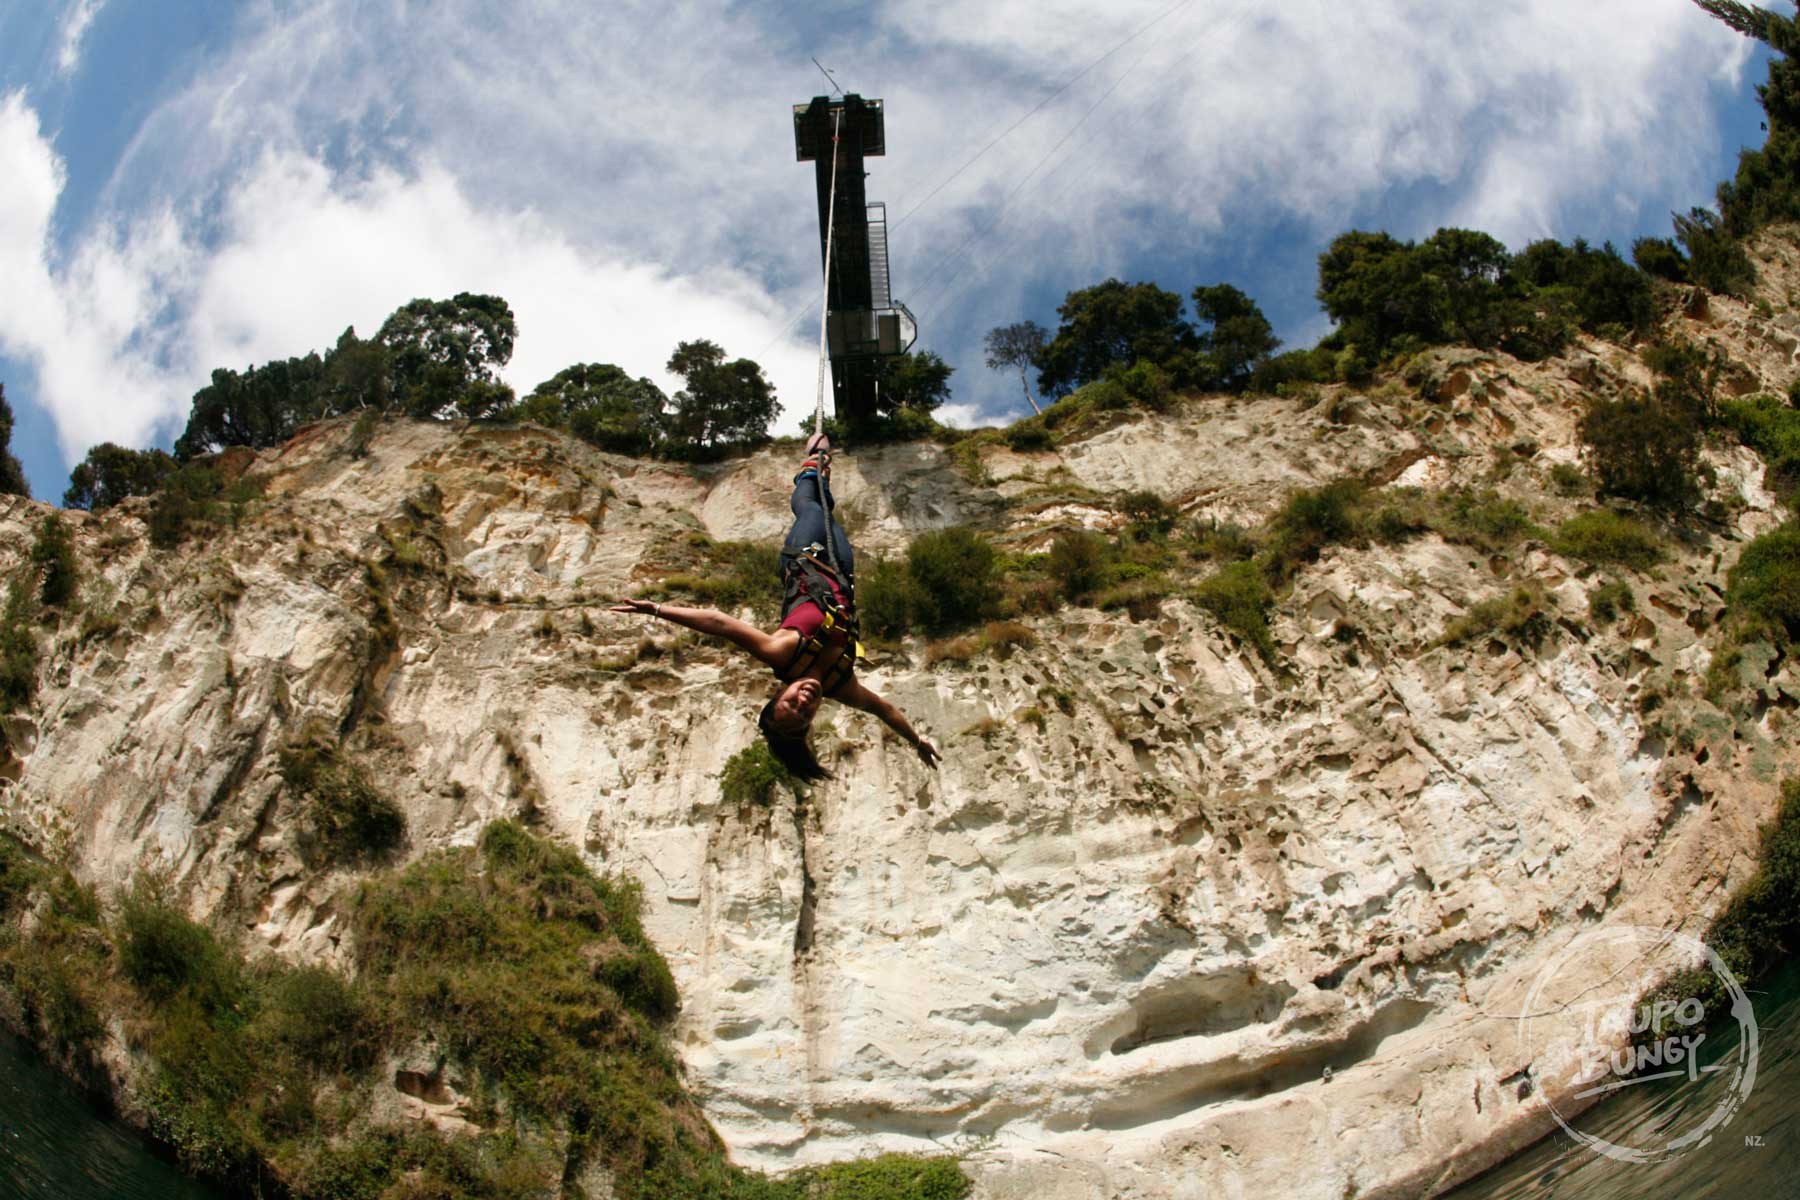 Taupo Bungy background